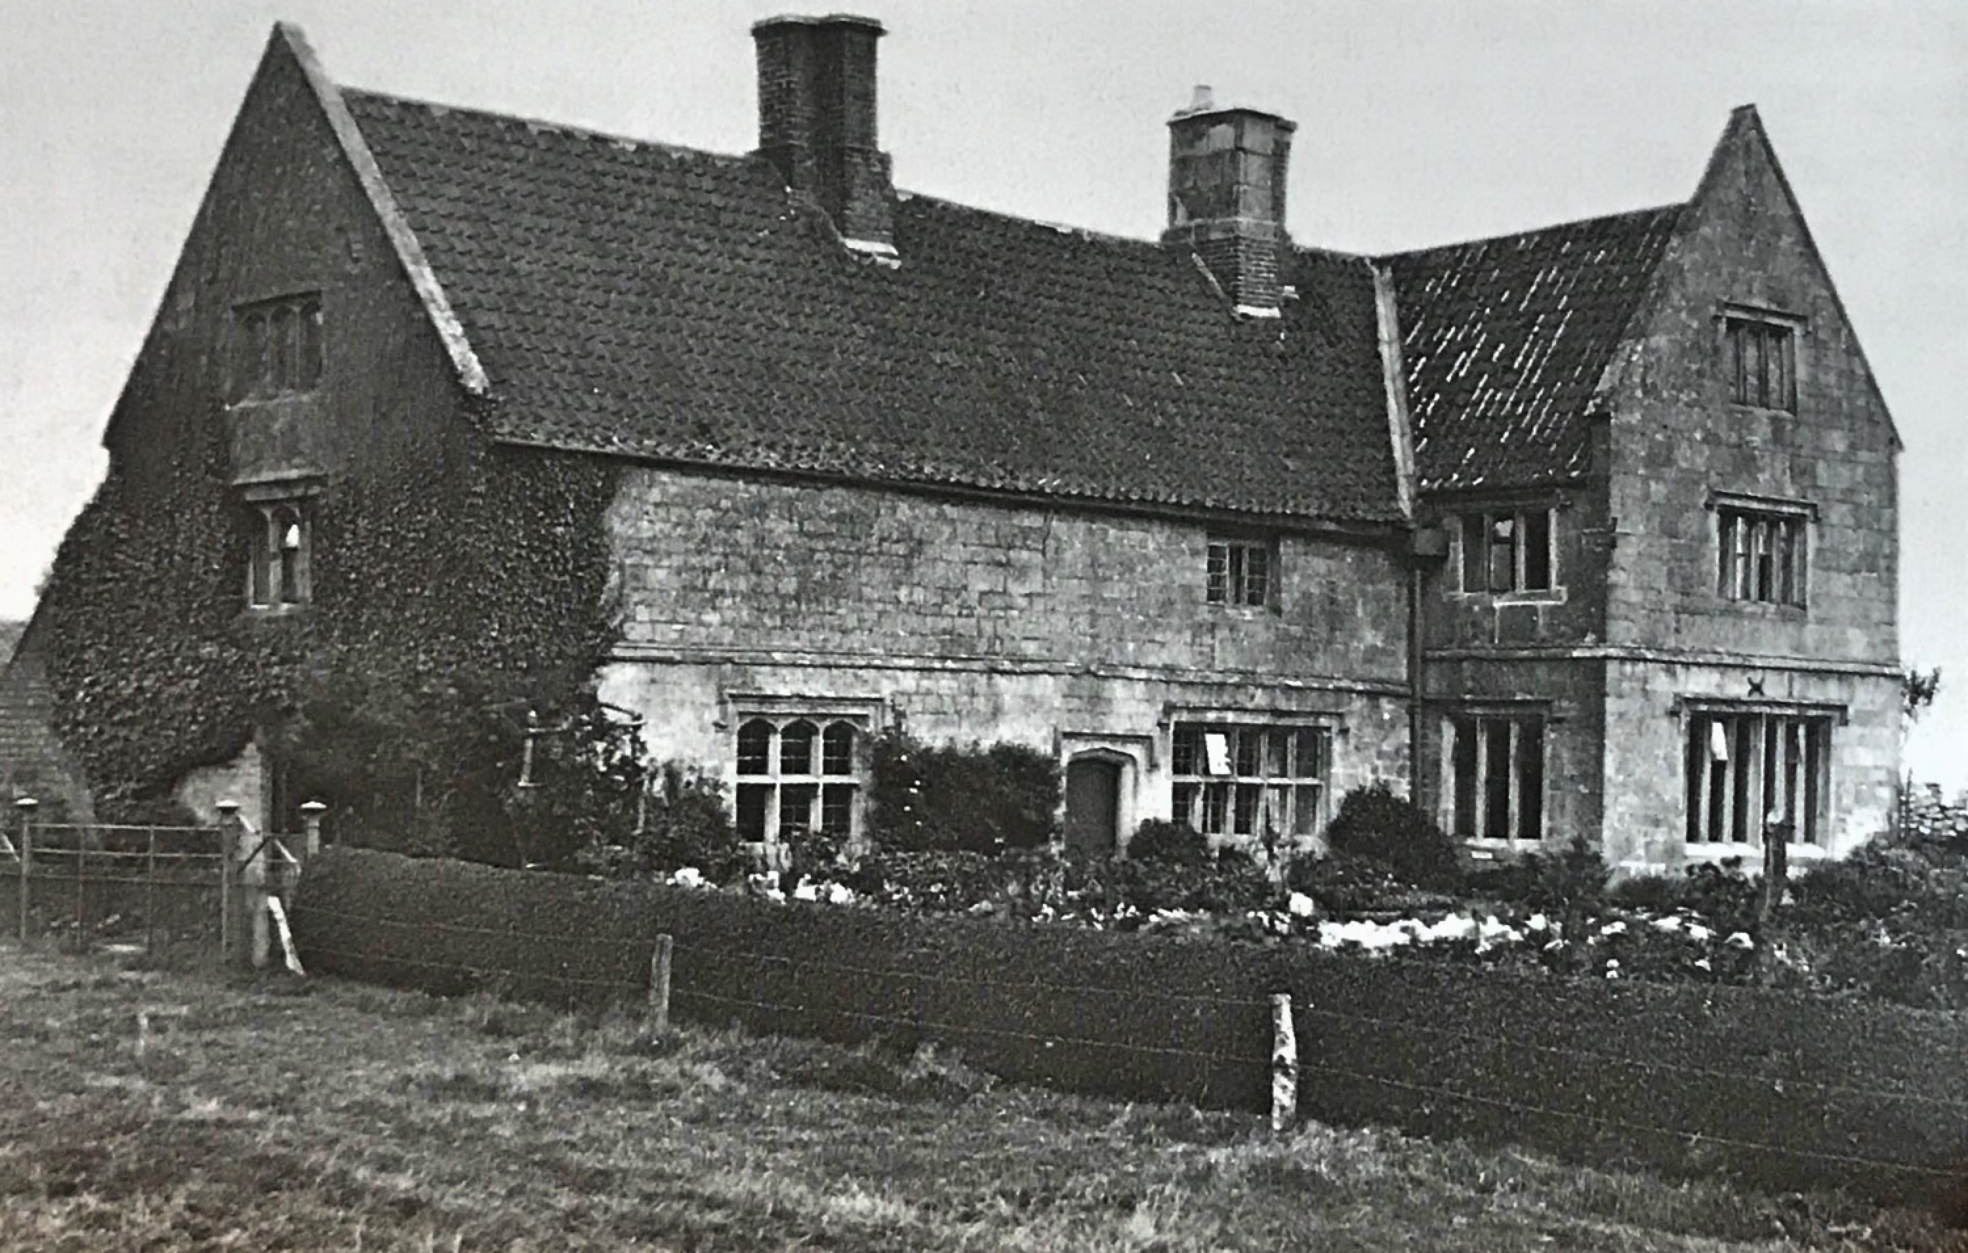 Monks House in 1930's